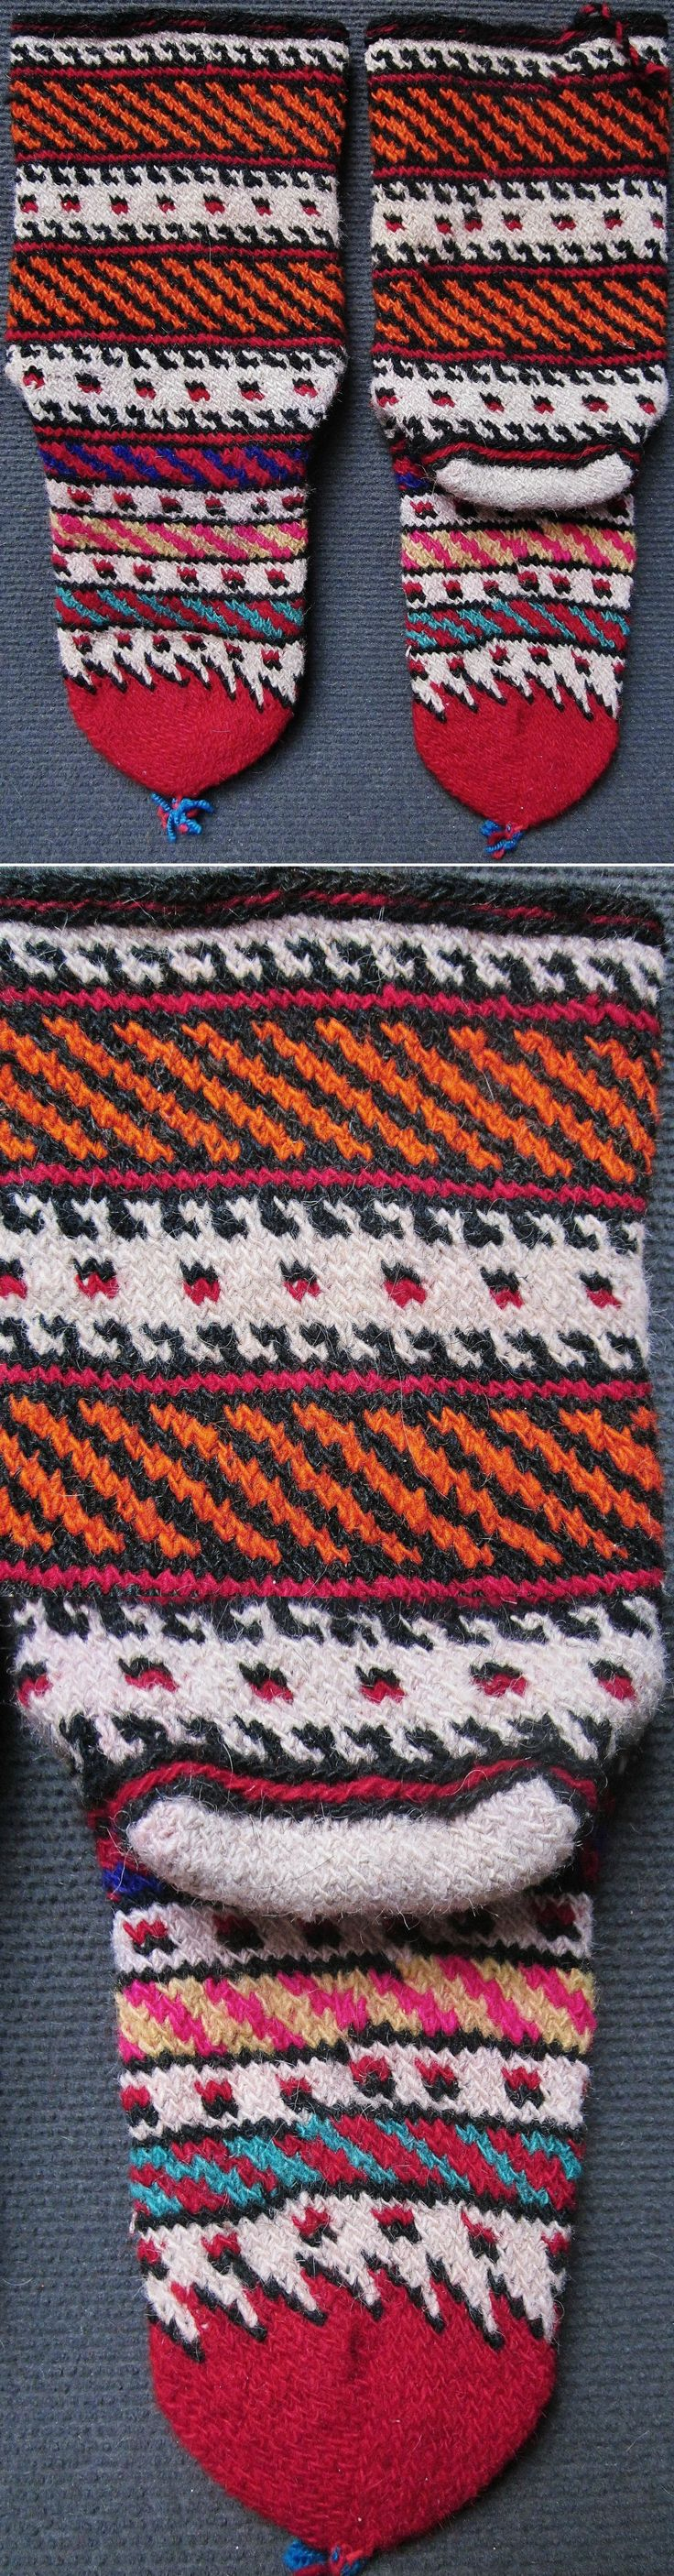 Traditional hand-knitted woollen socks, for women. From the Türkmen villages to the north of Dursunbey (80 km east of Balıkesir). Probably from Durabeyler, ca. 1950-1975. (Inv.n° çor080 - Kavak Costume Collection - Antwerpen/Belgium).